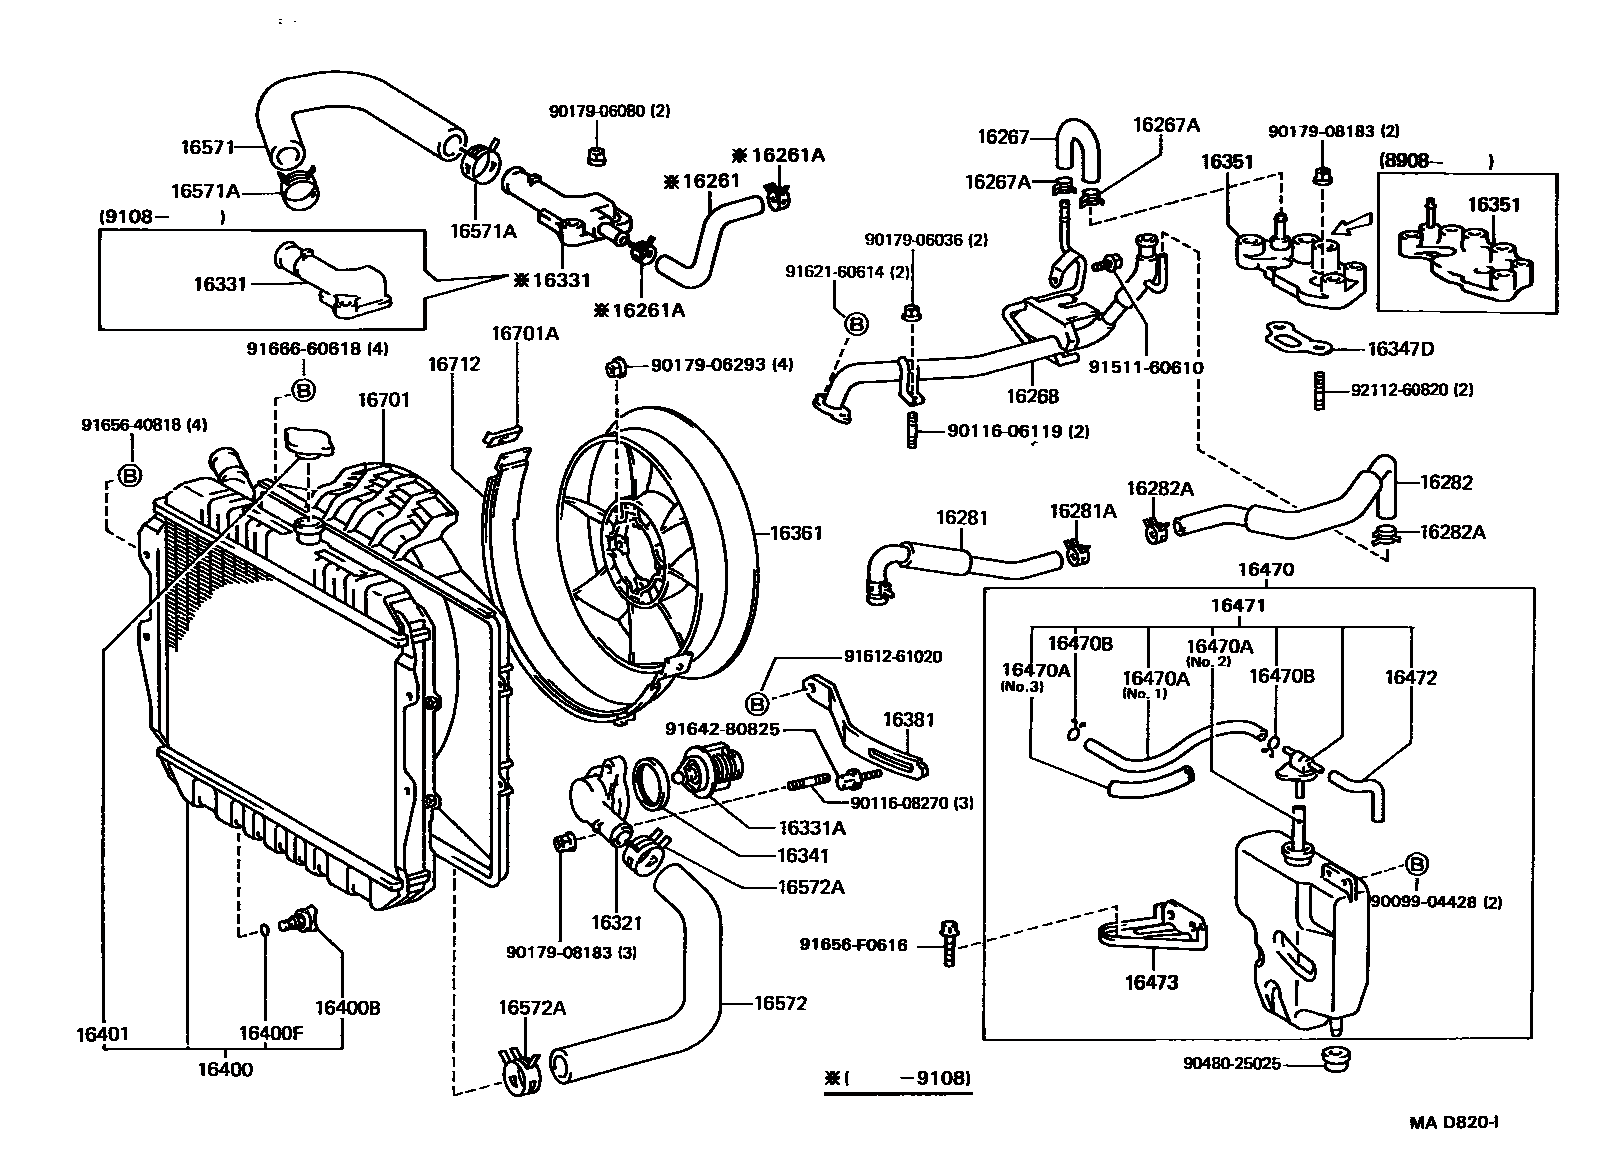 hight resolution of vacuum hose diagram toyota 3vze 7